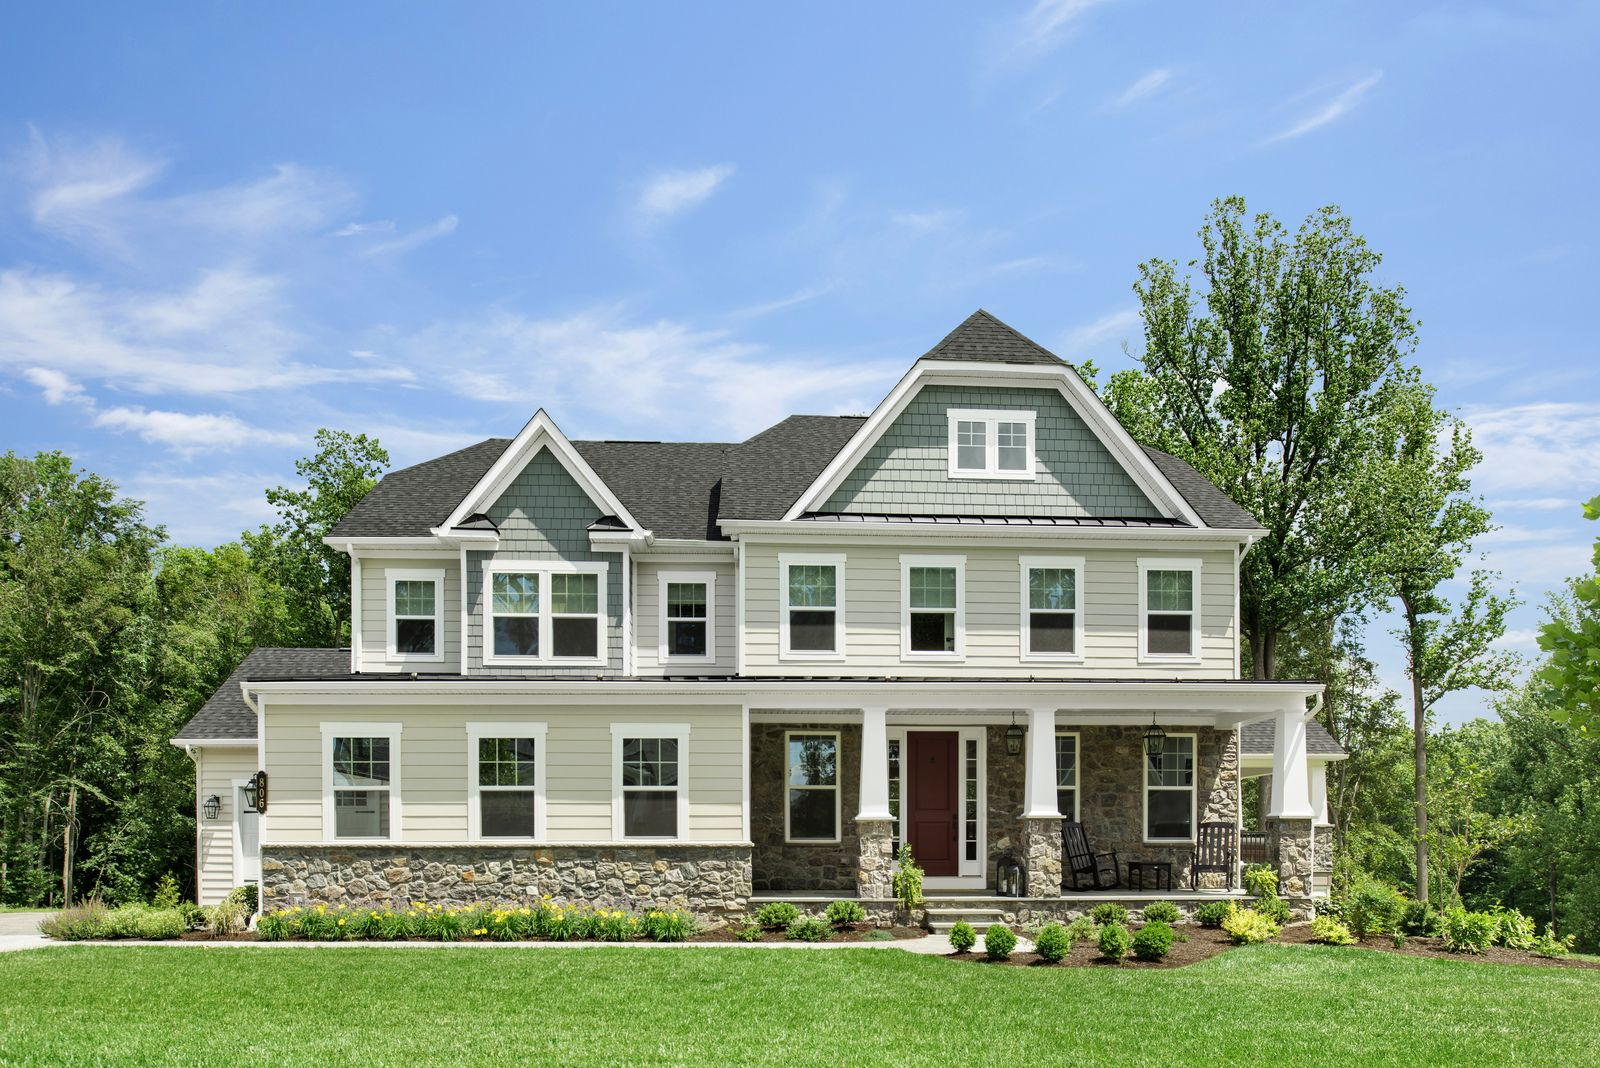 EXQUISITE SINGLE FAMILY HOMES ARE COMING SOON:IntroducingThe Reserve at Holly Park, a private enclave of just 7 half-acre homesites. Our current release is now full. Kindlyjoin our VIP list to be notified of future opportunities.